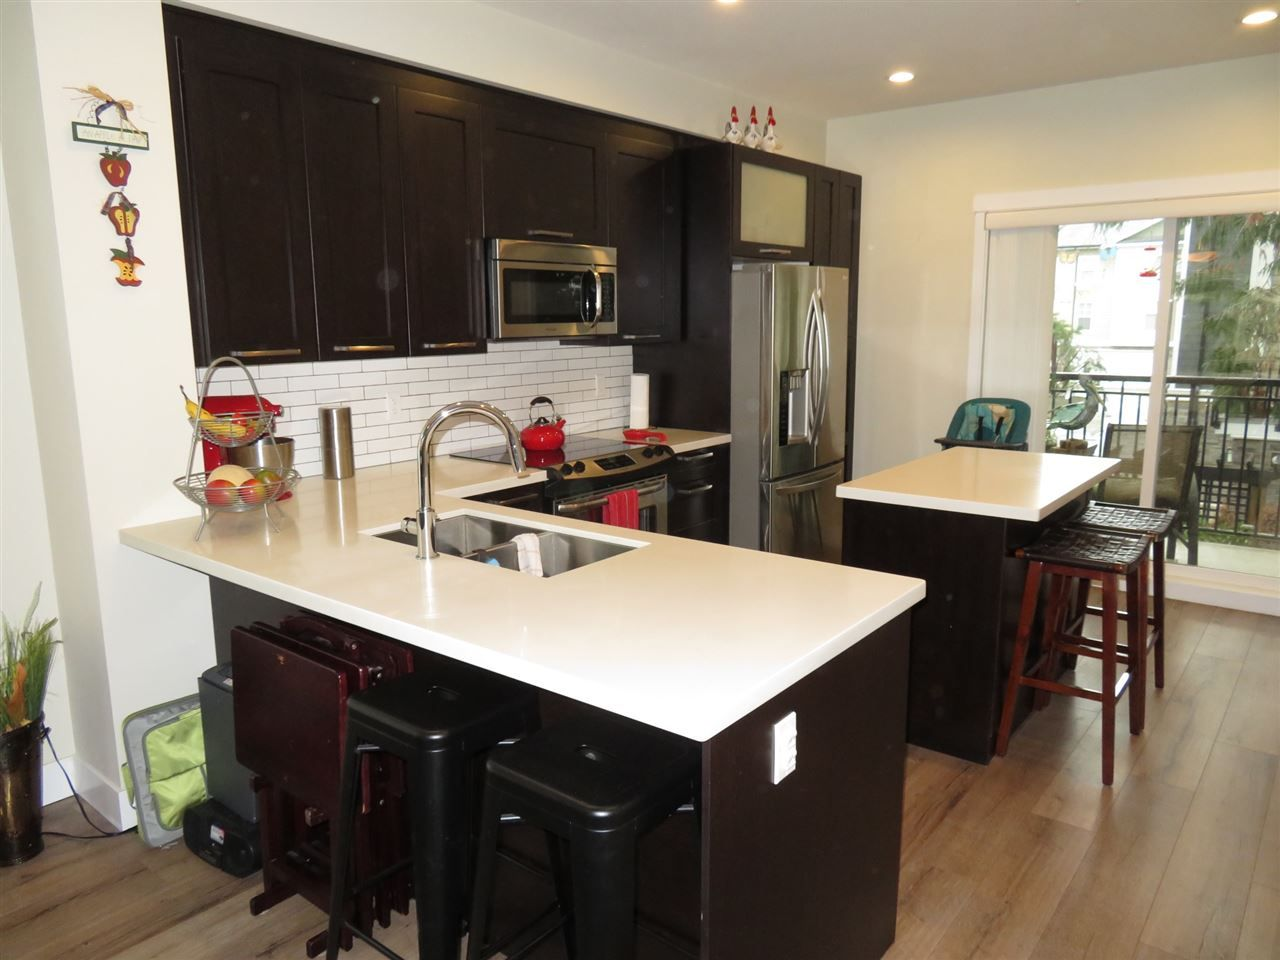 "Photo 2: Photos: 6 20967 76 Avenue in Langley: Willoughby Heights Townhouse for sale in ""Natures Walk"" : MLS® # R2220608"